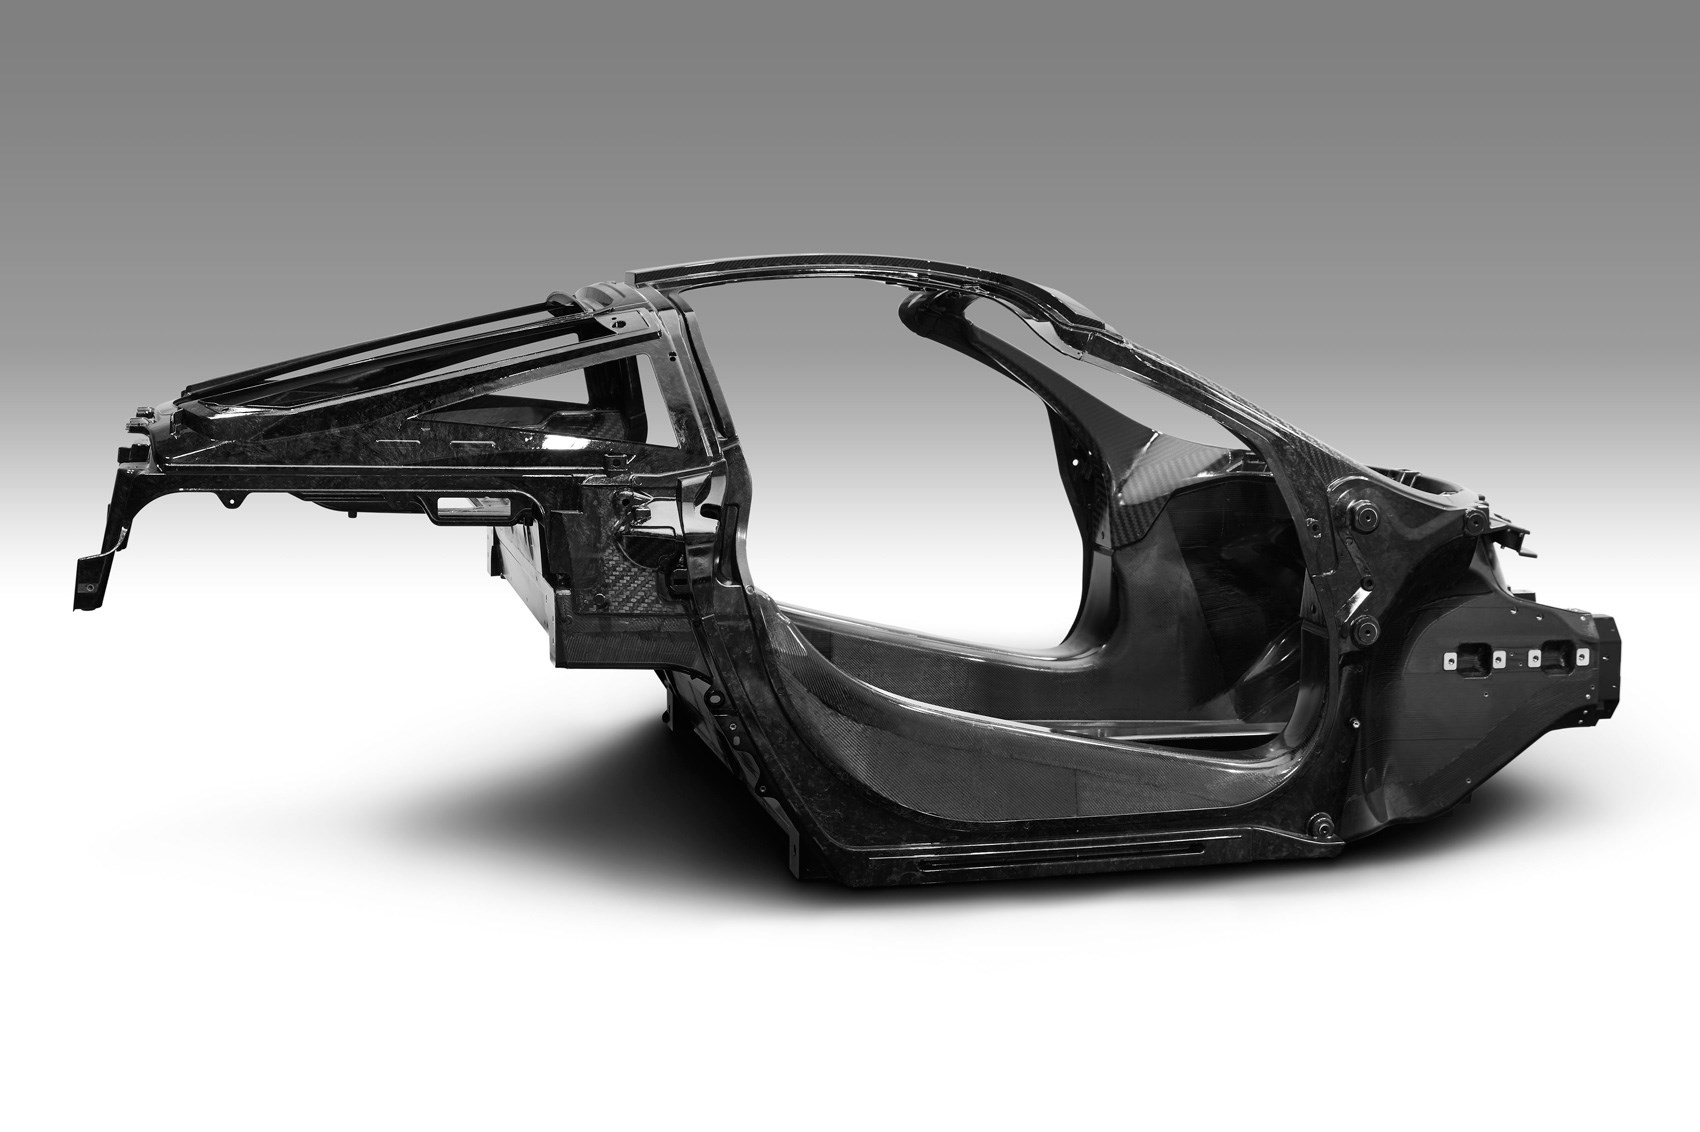 McLaren previews second-gen Super Series